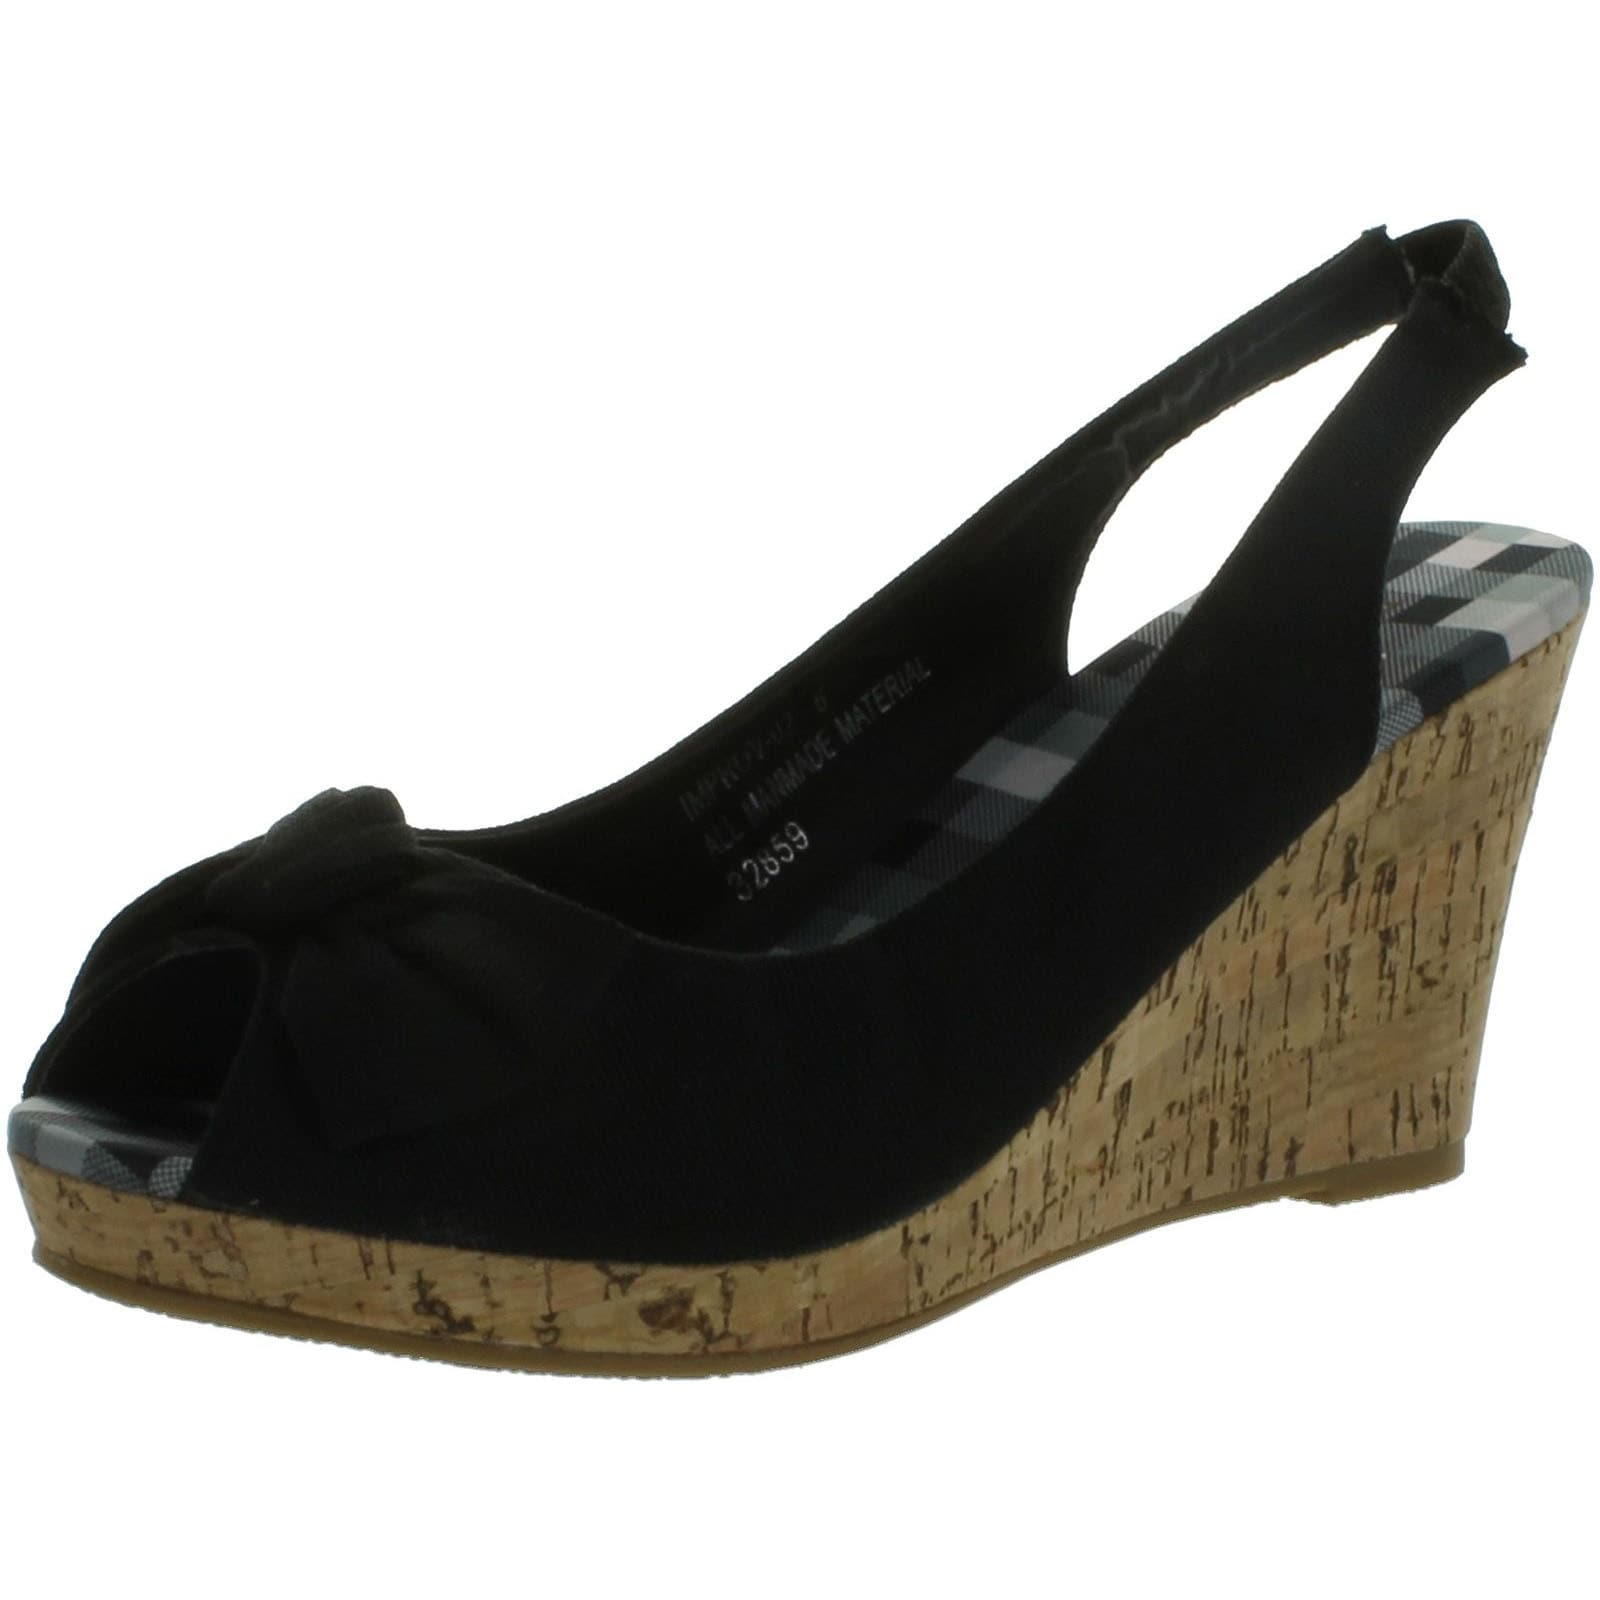 5acc89b97e1 Buy Bamboo Women s Sandals Online at Overstock